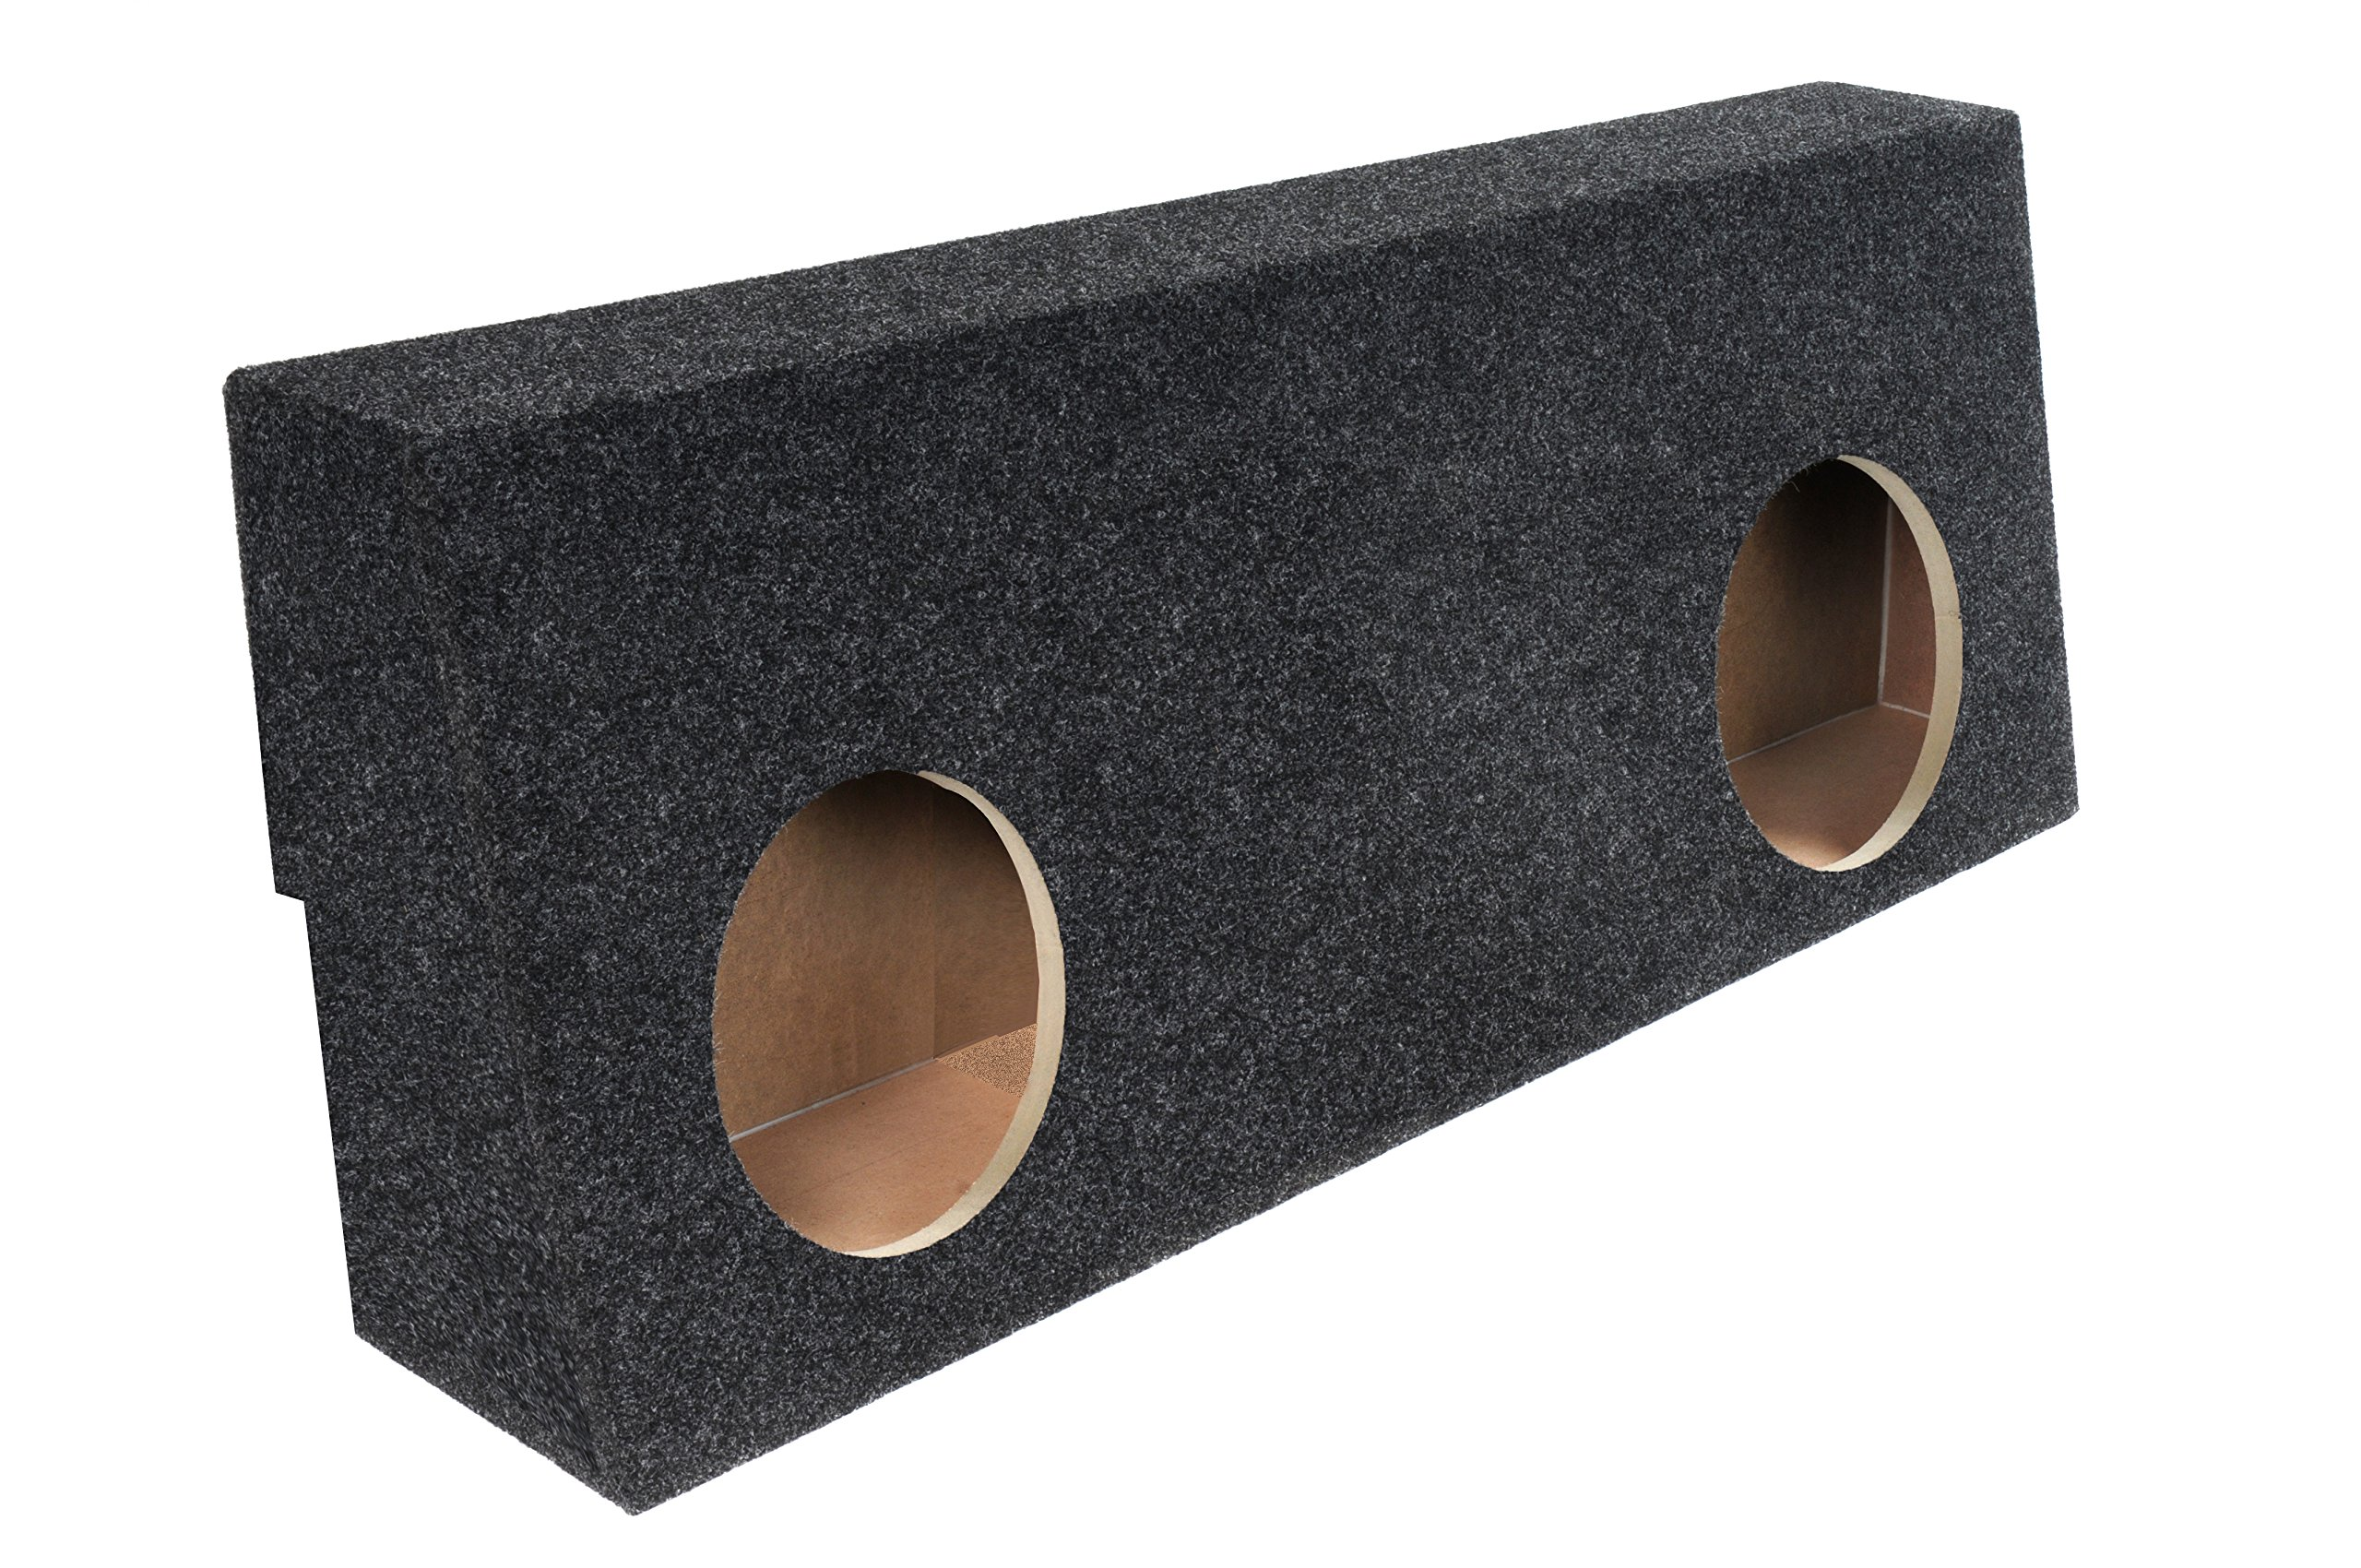 Bbox A604-12CP Dual 12'' Sealed Carpeted Subwoofer Enclosure - Fits 2007 - 2013 Toyota Tundra Crew Max